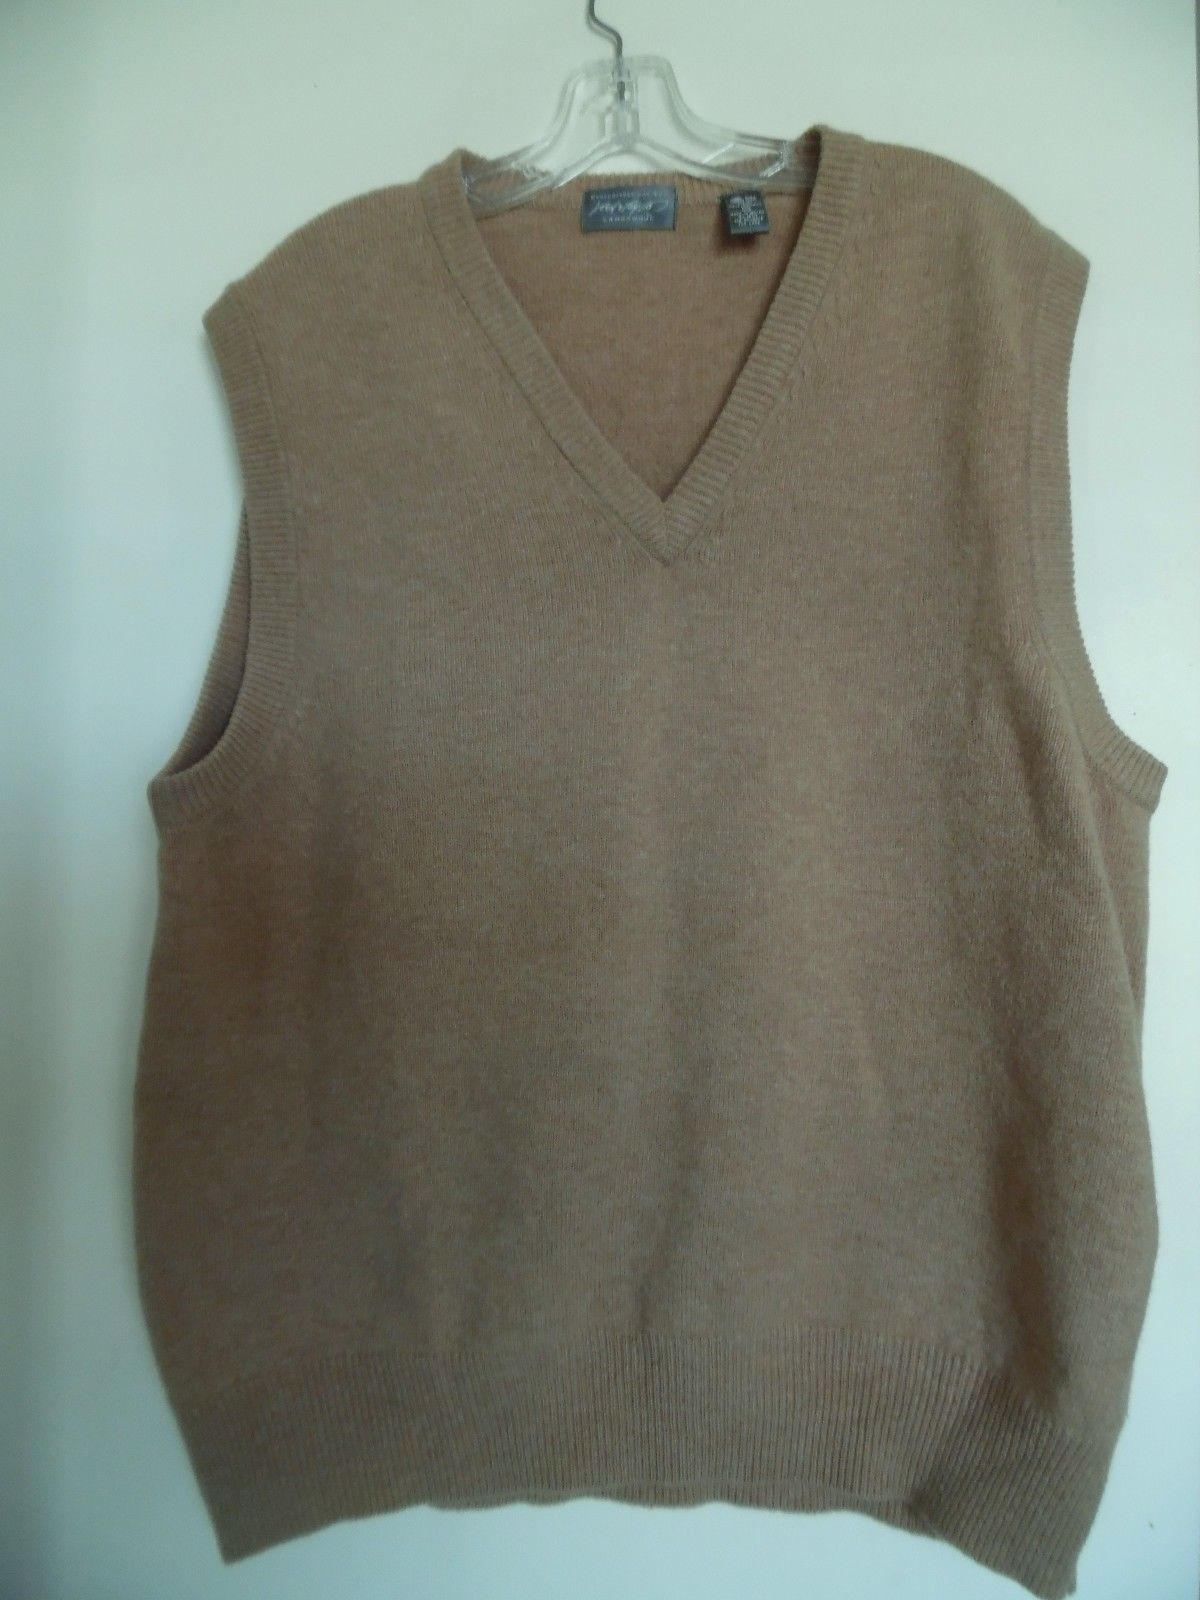 LORD & TAYLOR Men's Sweater Vest 100% Lamb's Wool XL Camel | Men's ...